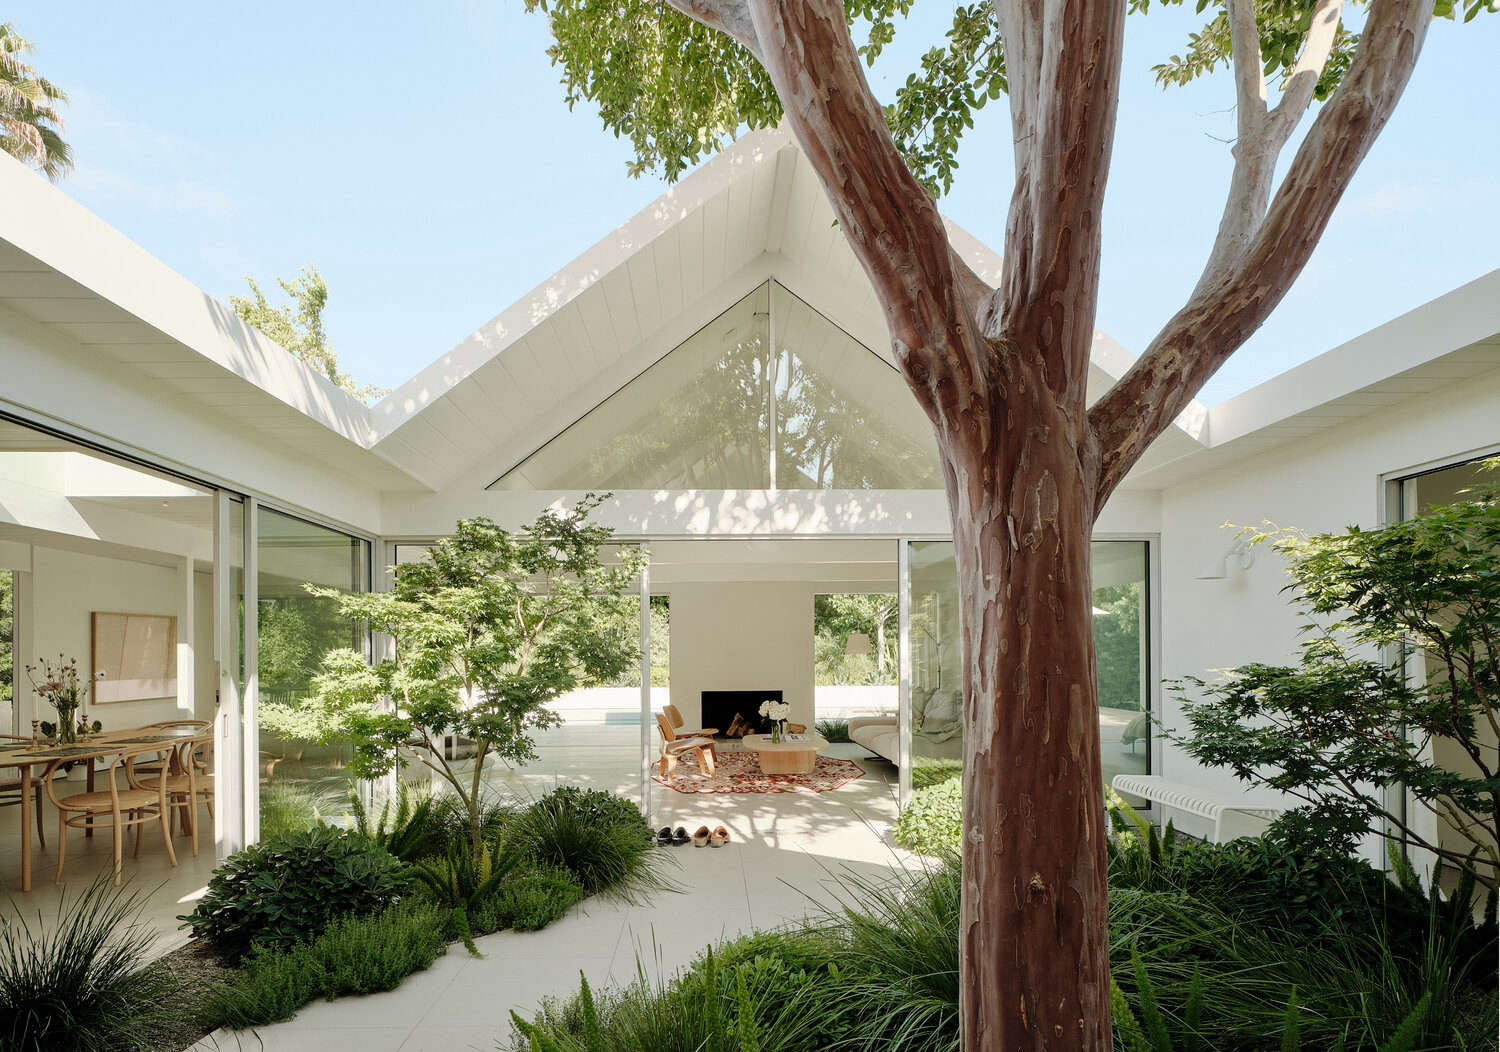 Twin Gables: A Mid-century Eichler House in Silicon Valley Gets a Minimalist Update - Remodelista